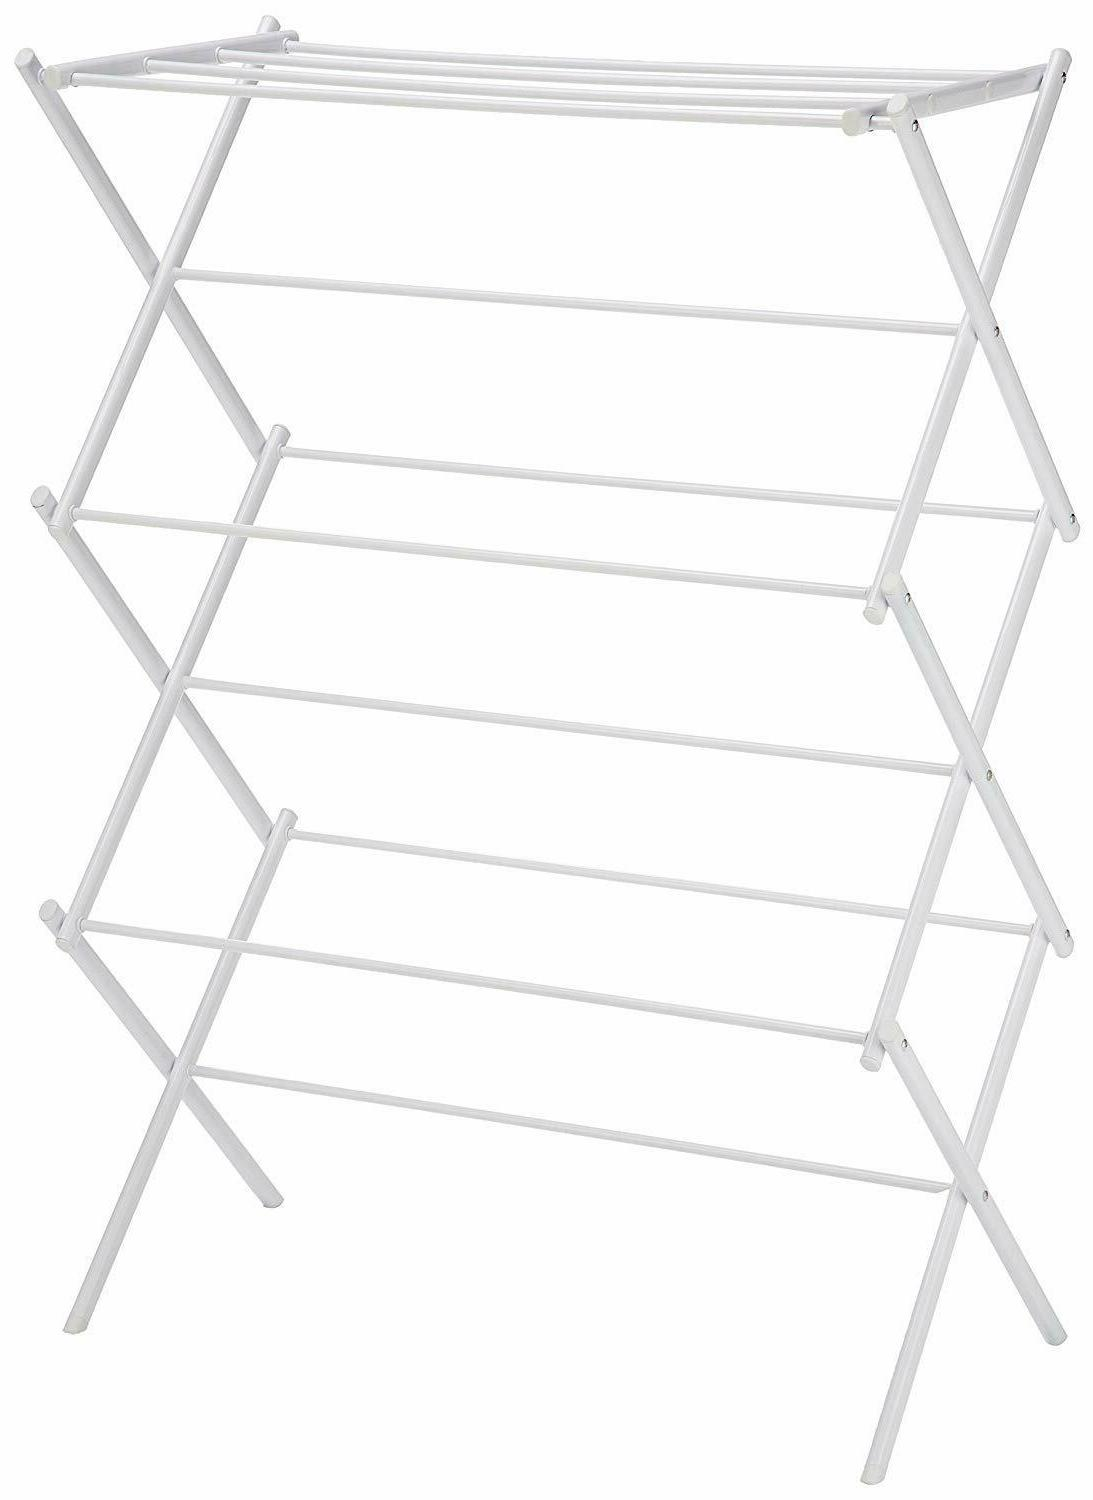 foldable clothes drying laundry rack white